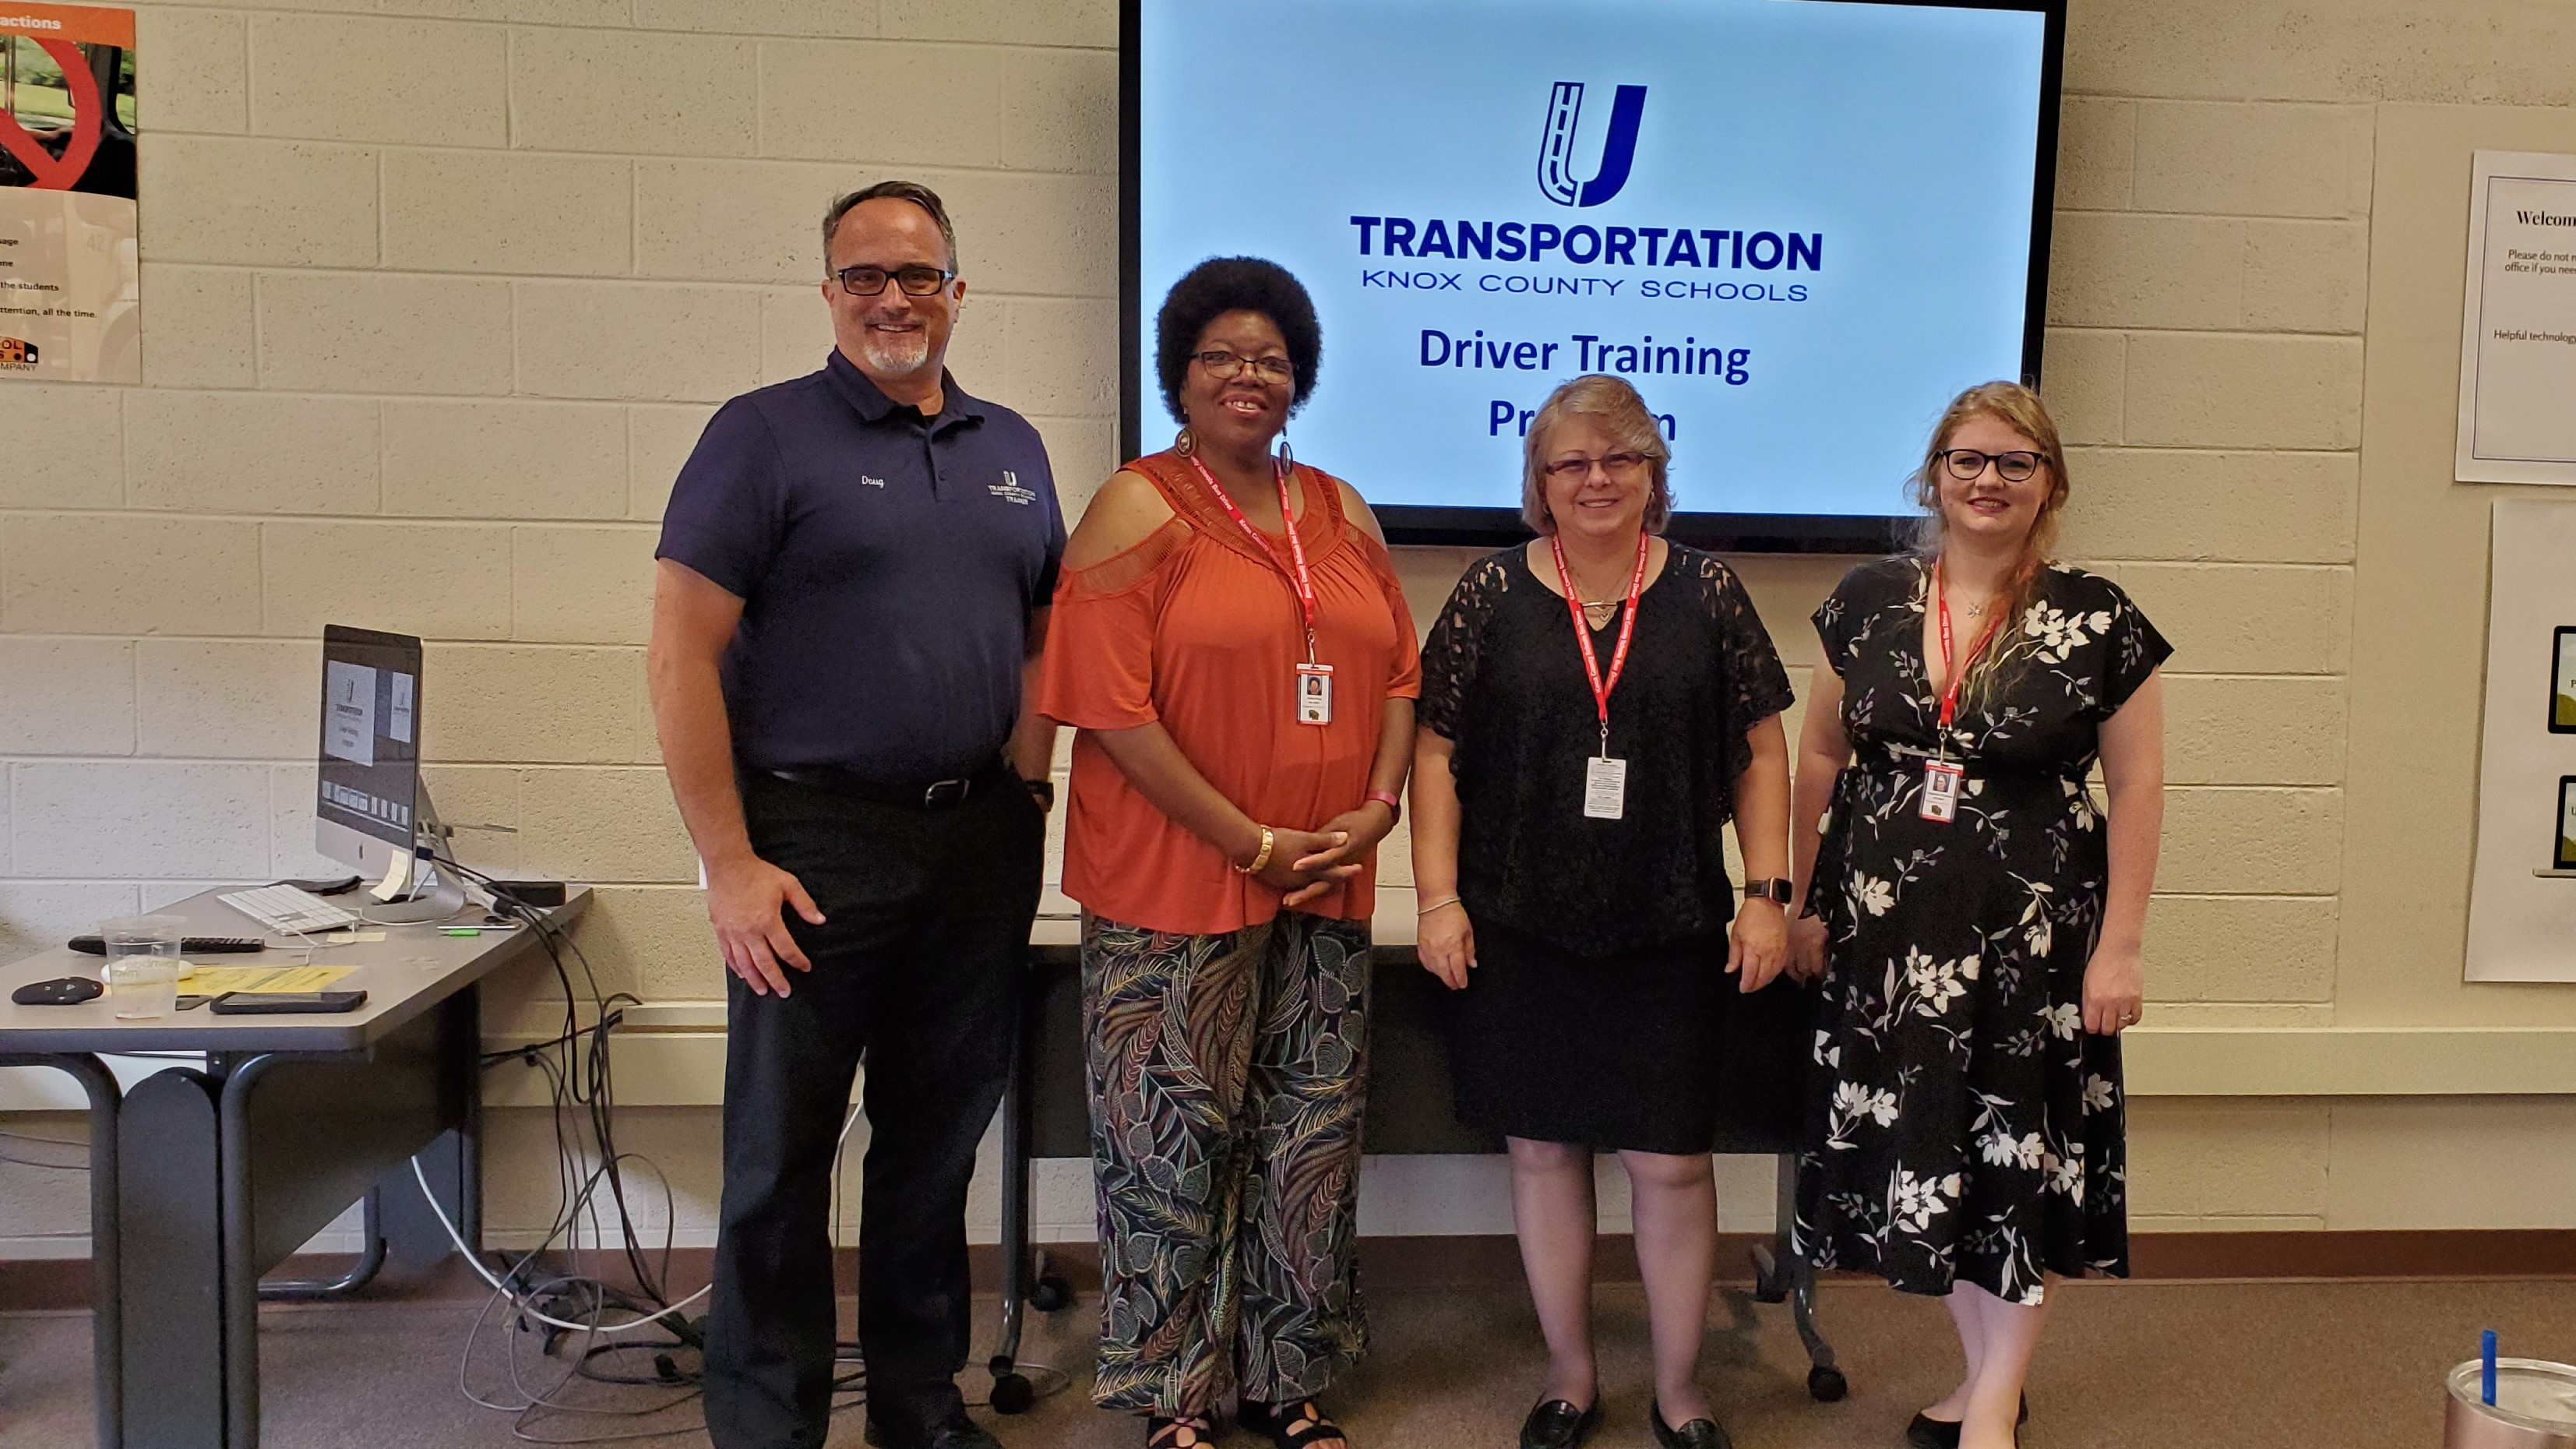 Transportation U, a KCS program that trains new bus drivers for Knox County Schools, recently celebrated its first class of graduates. In this picture, trainer Doug Romig (left) stands with (L to R) Anita King, Bonnie Gillespie and Cheyenne Rickman.